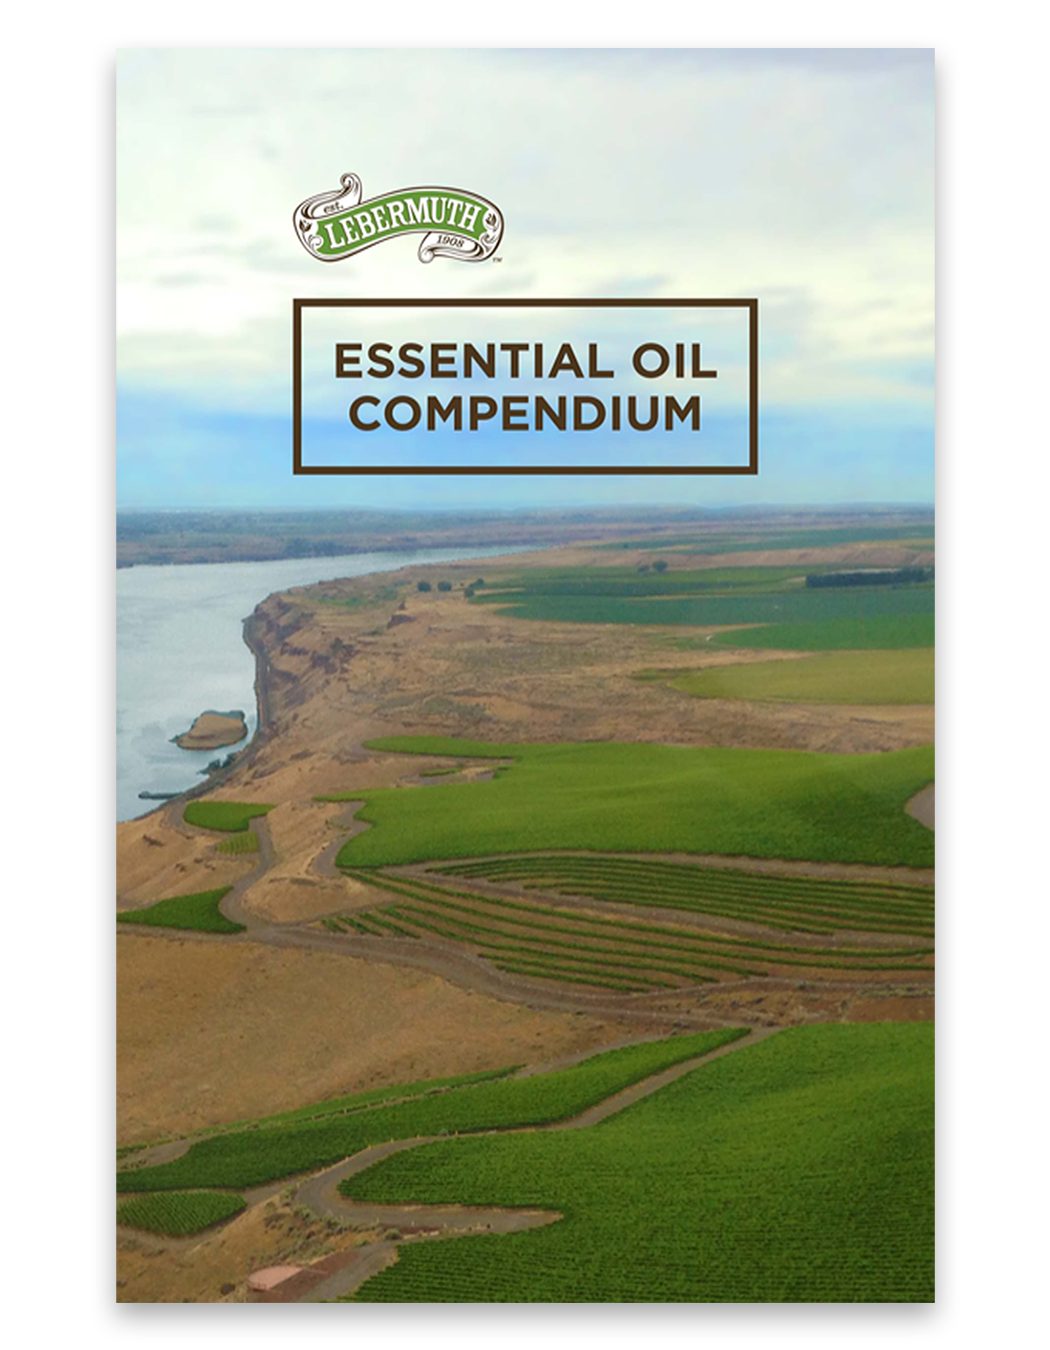 Our Essential Oil Compendium is a great resource to keep on hand